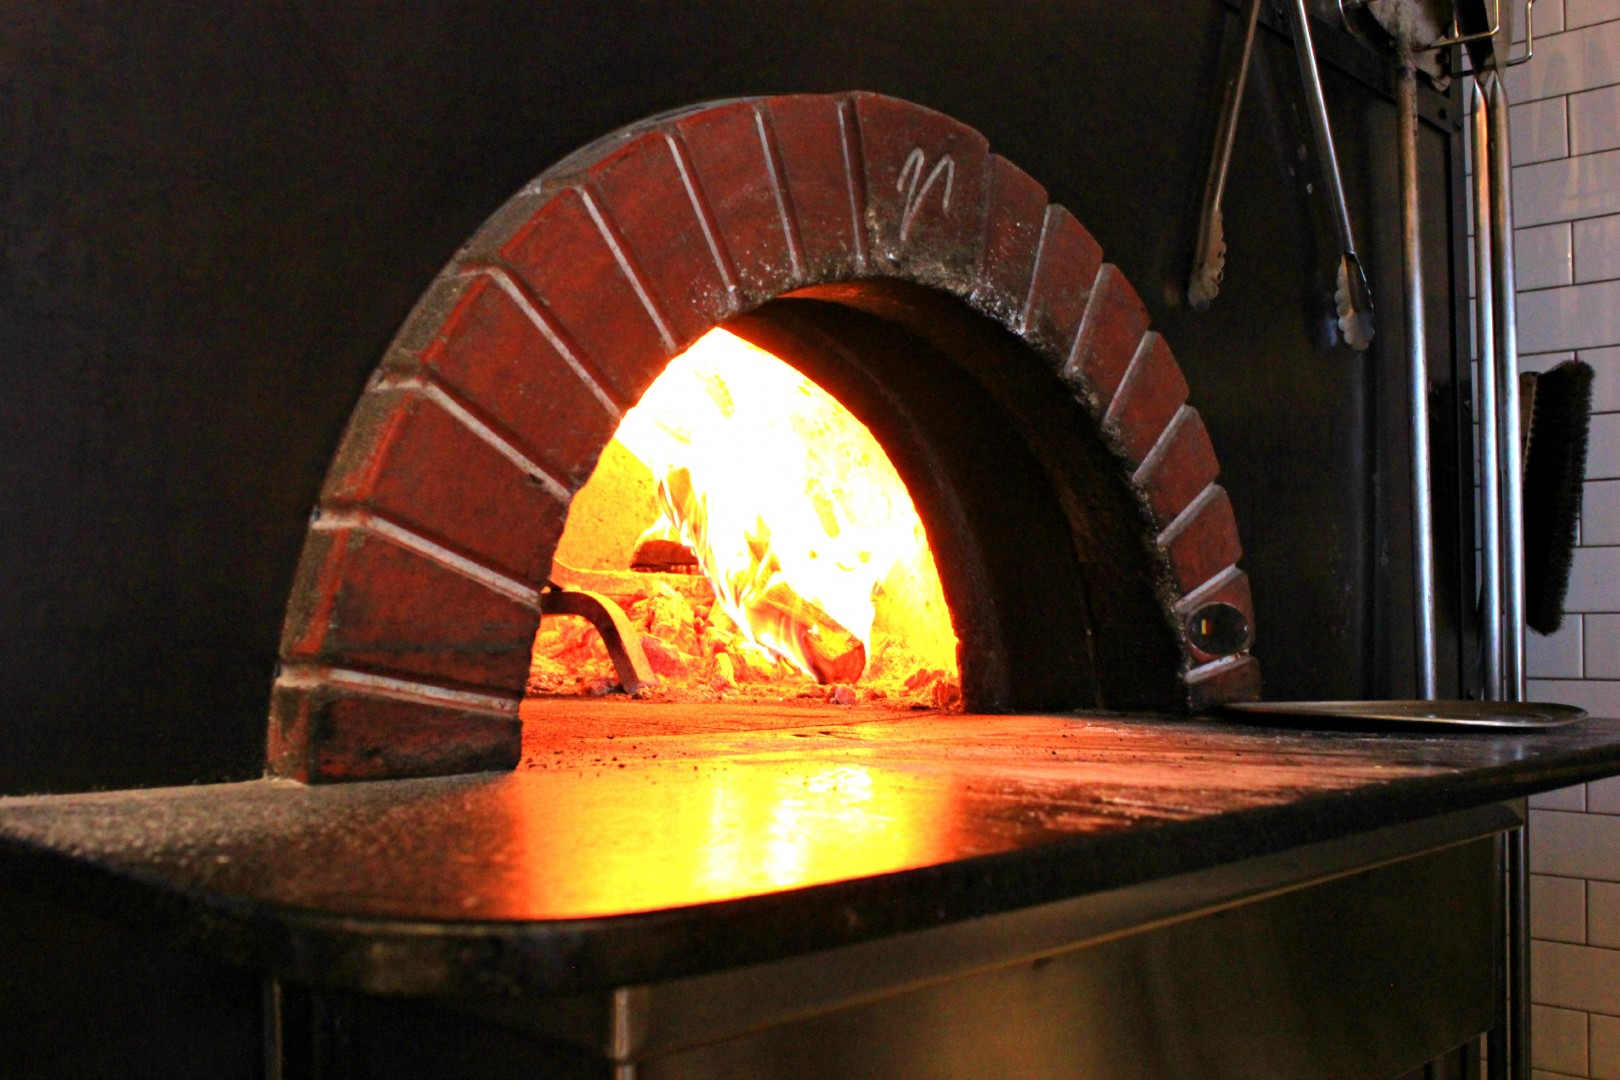 Wood fire oven used to cook all menu items served at Centro Pizzeria located 50 W Center St, Cedar City, Utah, Nov. 1, 2014 | Photo by Ali Hill, St. George News